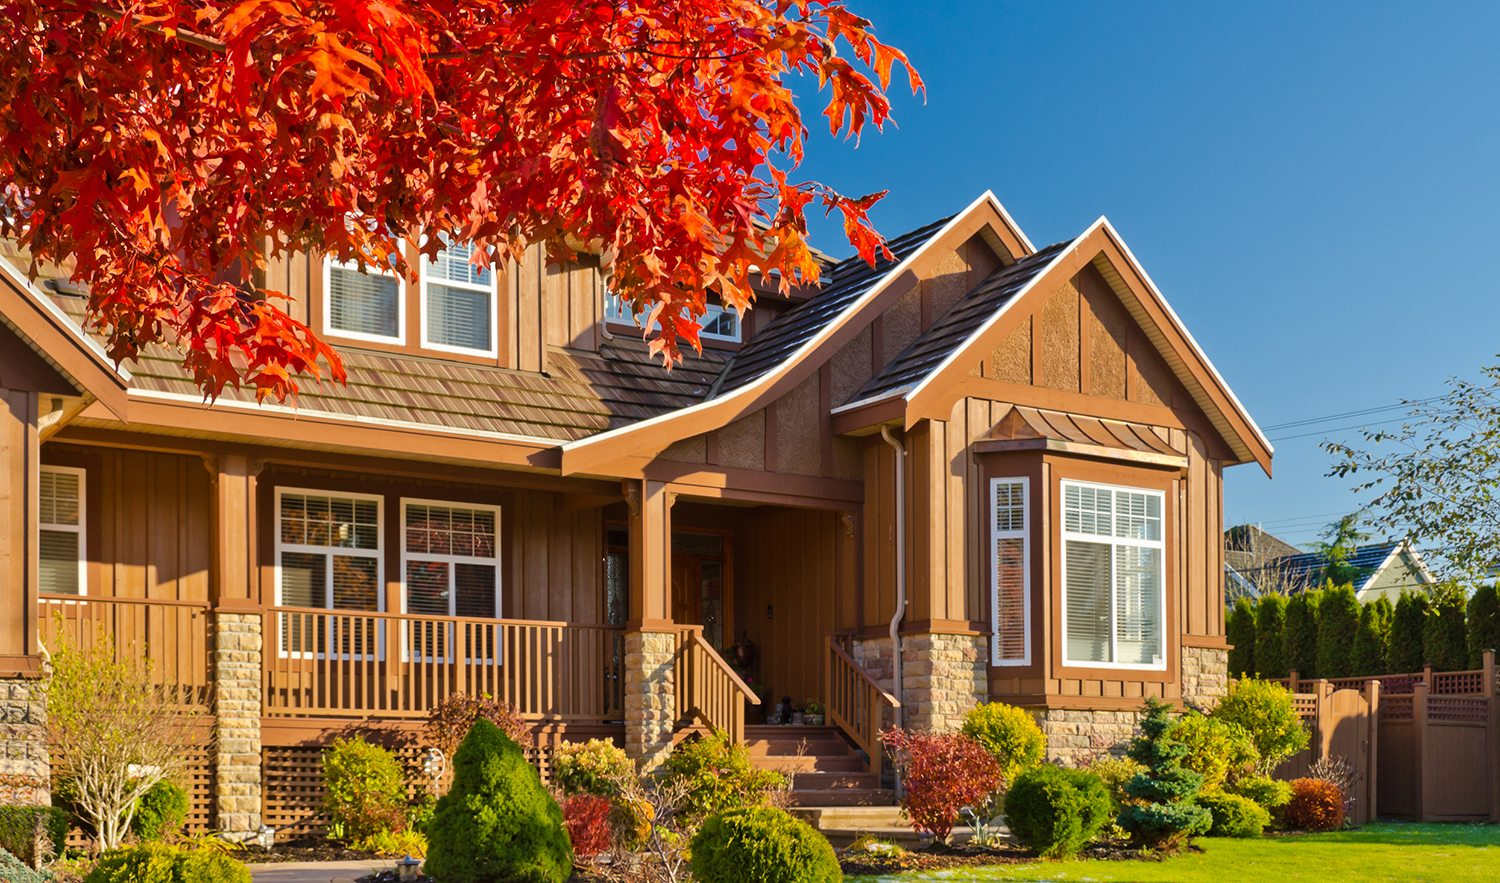 Tips For Home Sellers As The Fall Home Buying Season